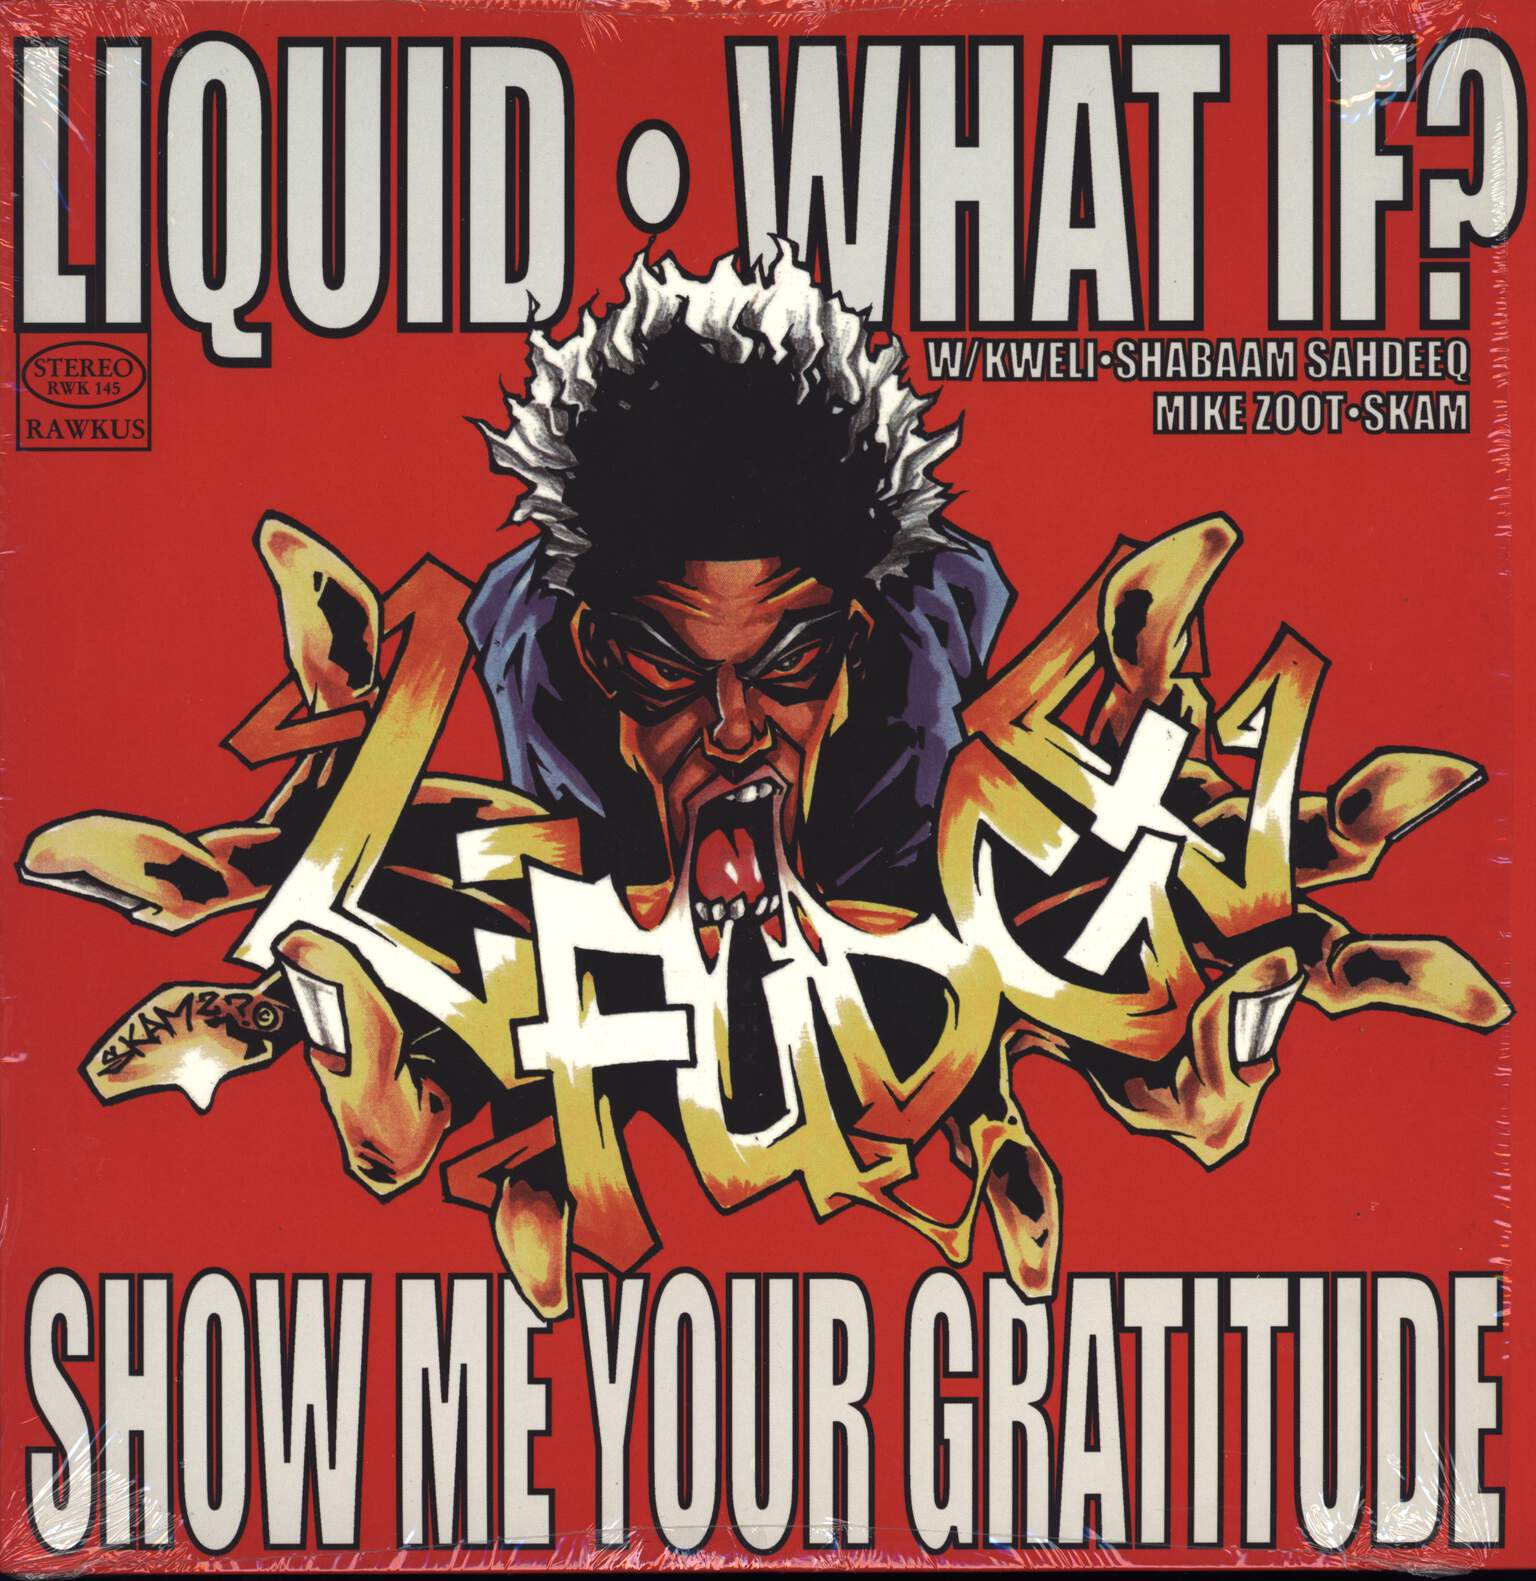 "L-Fudge: Liquid / What If? / Show Me Your Gratitude, 12"" Maxi Single (Vinyl)"